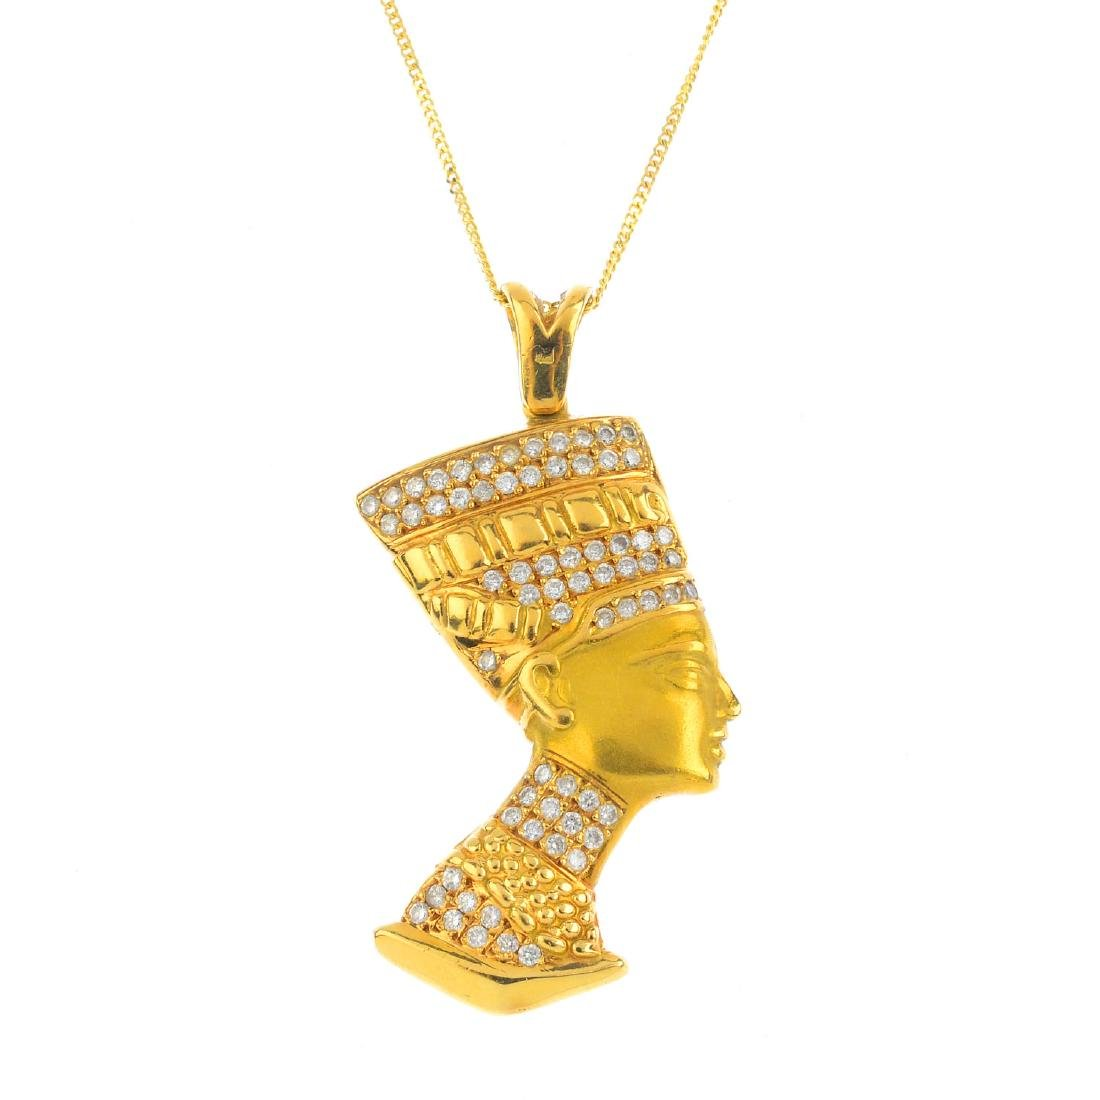 A diamond pendant. Designed to depict a pharaoh in